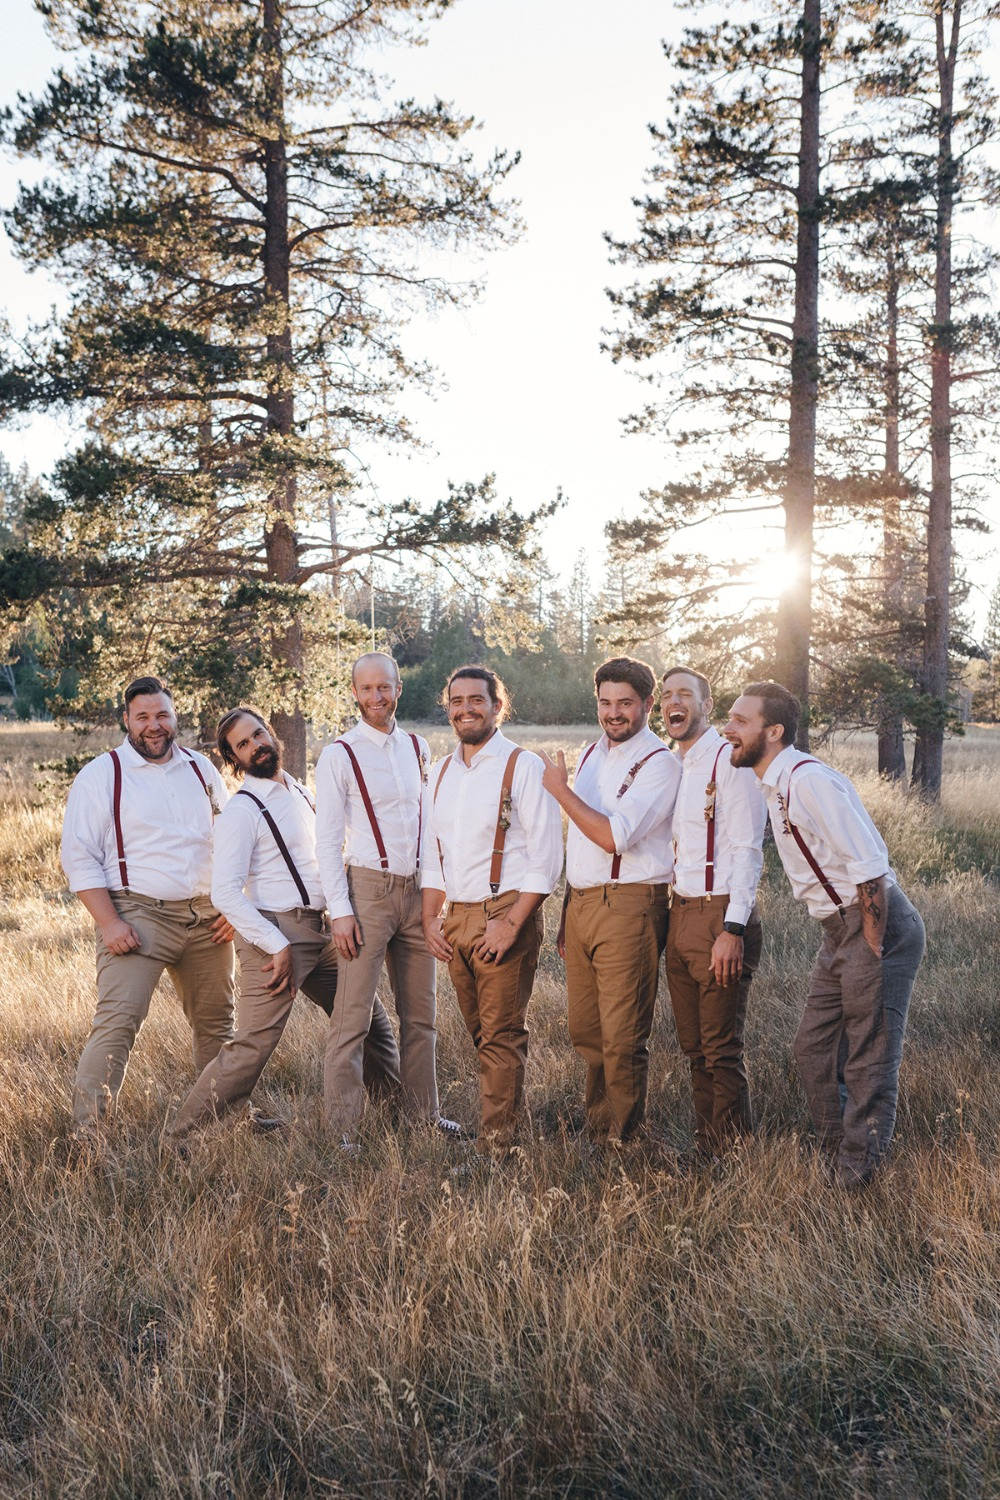 groom and his men in tan jeans and suspenders